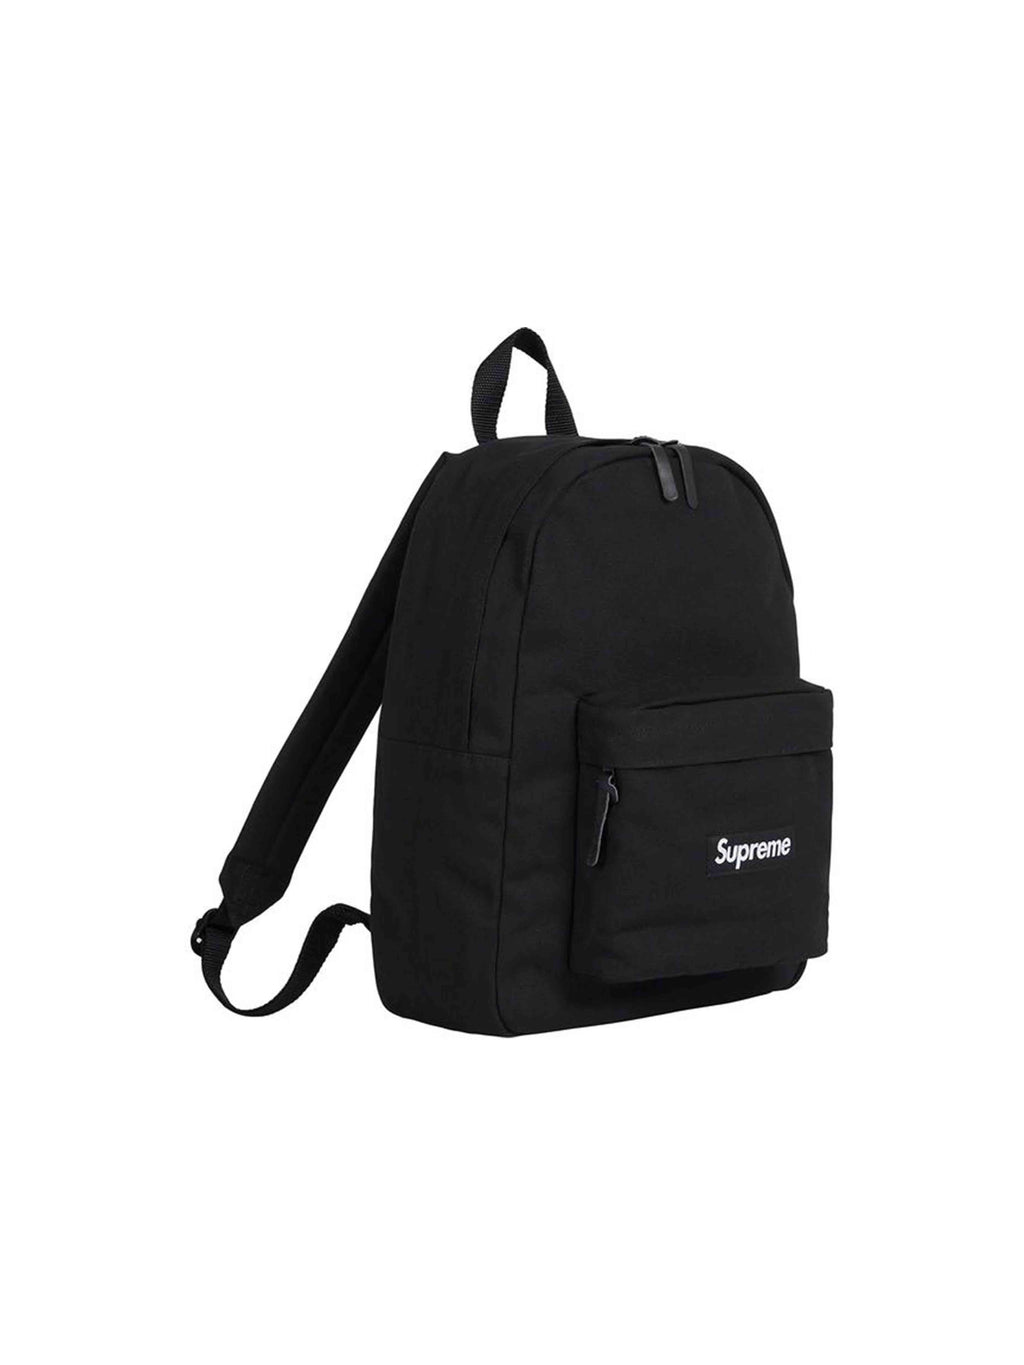 Supreme Canvas Backpack Black [FW20] - PRIOR